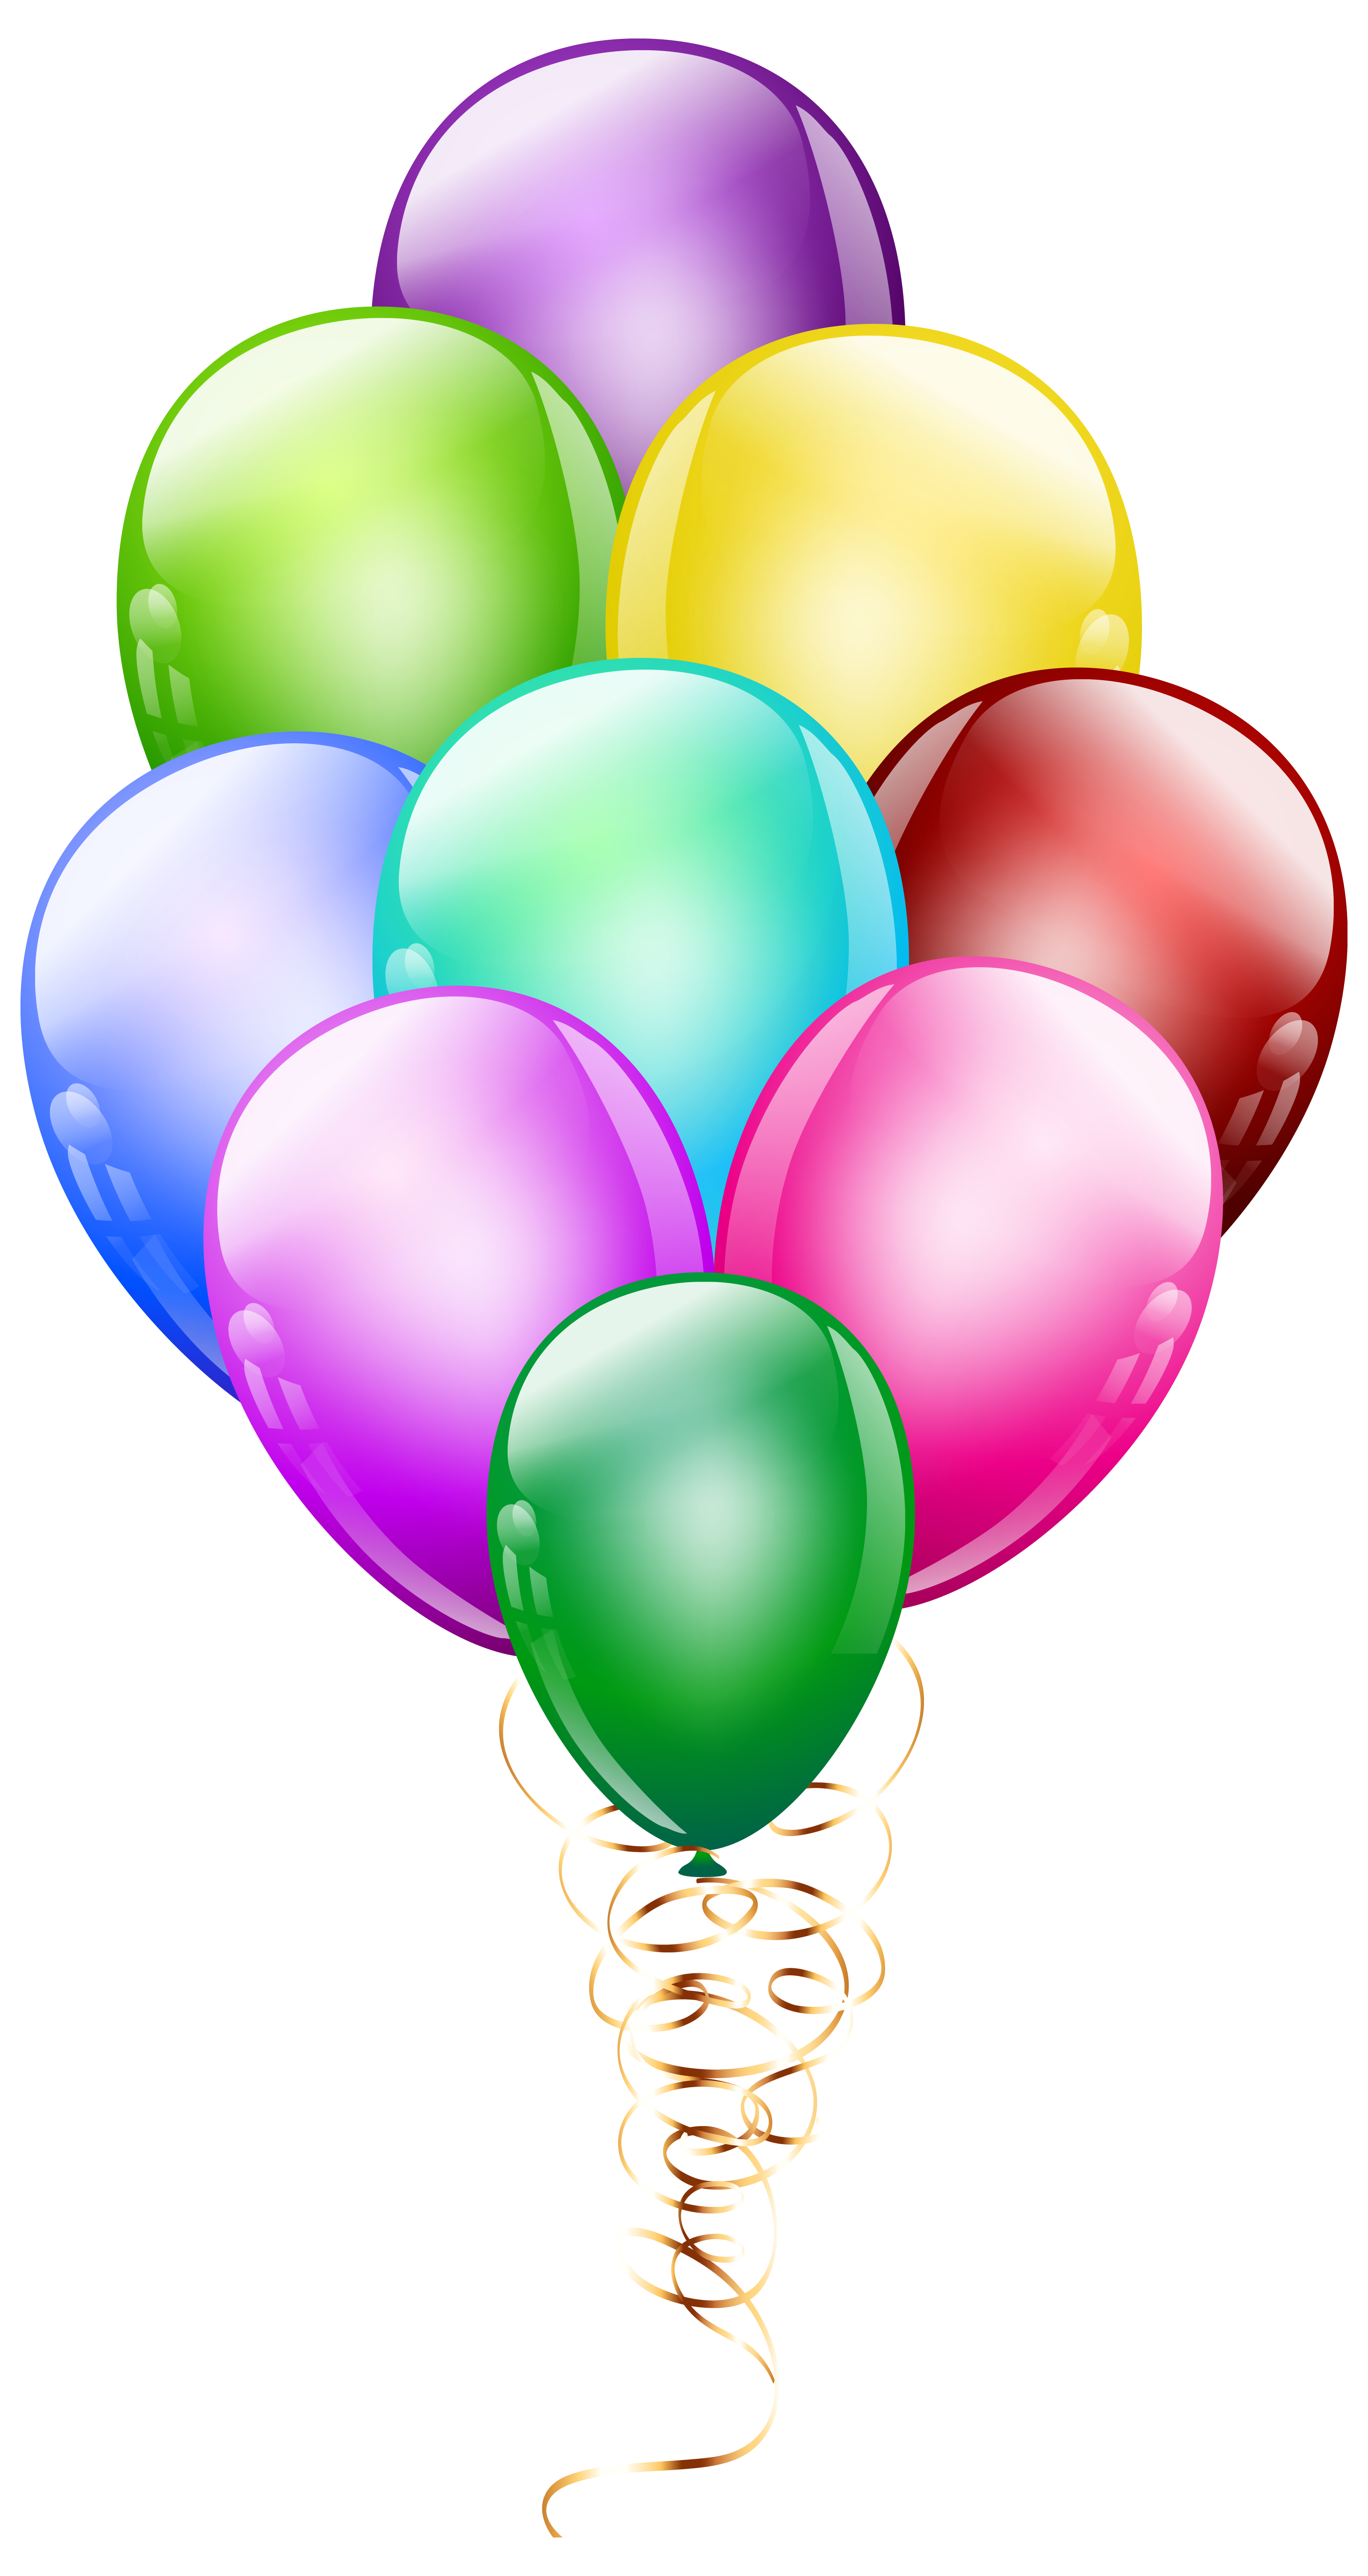 Bunch png image gallery. Clipart balloon turquoise